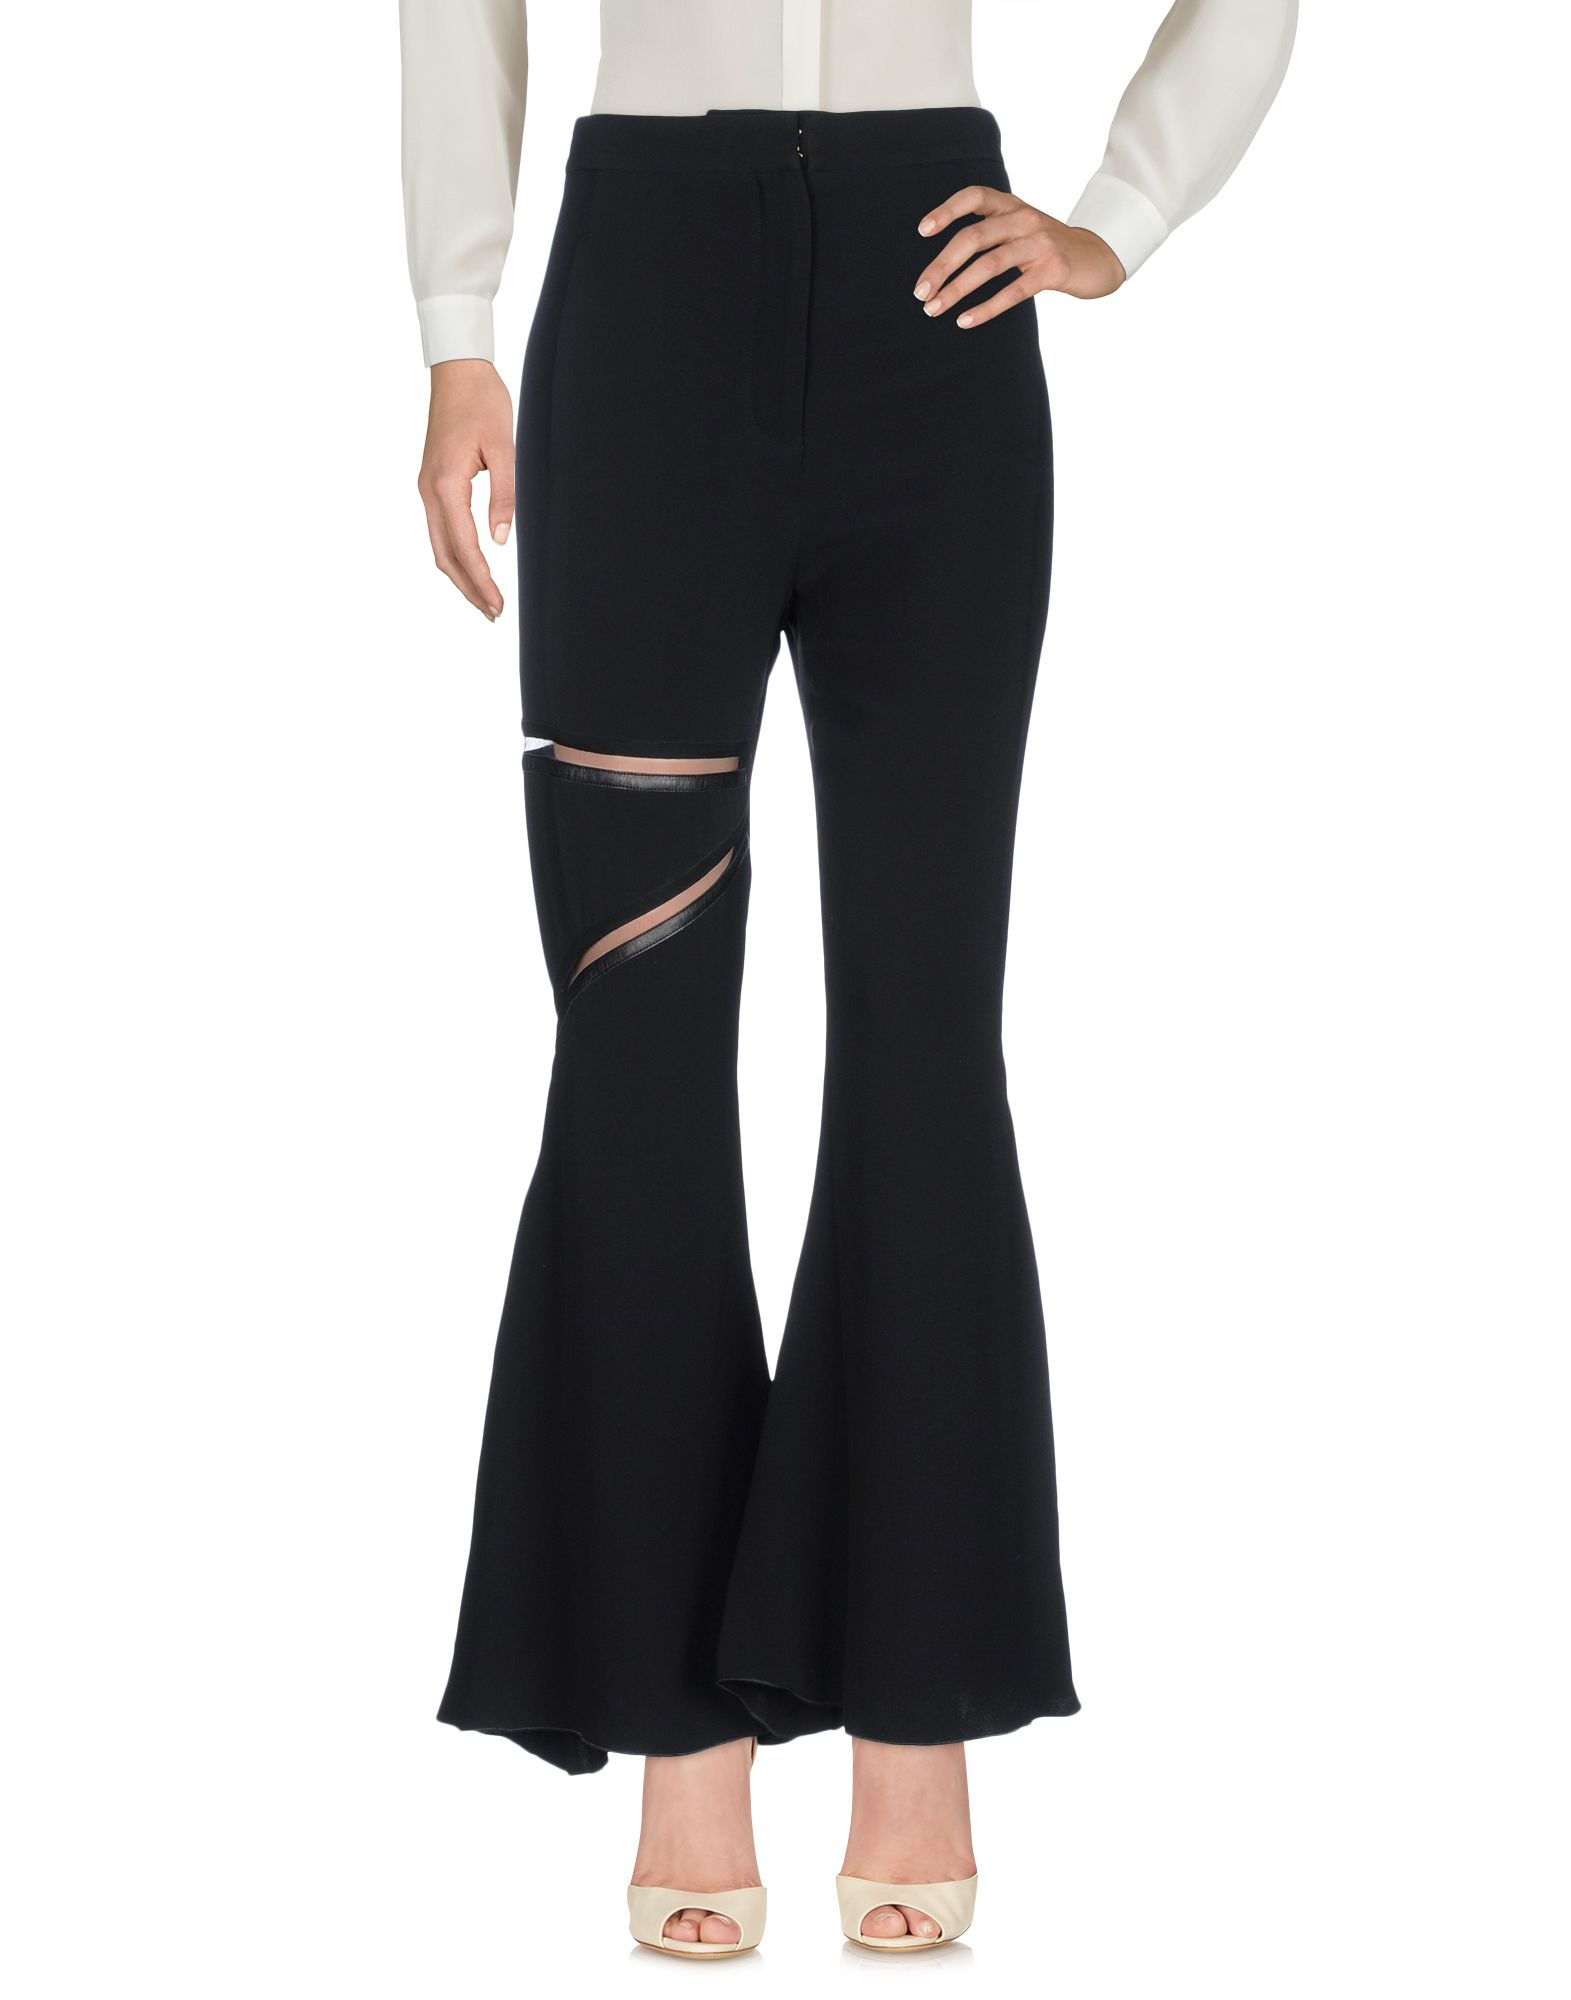 Pantalone Versace Donna - Acquista online su tAB77rBs5